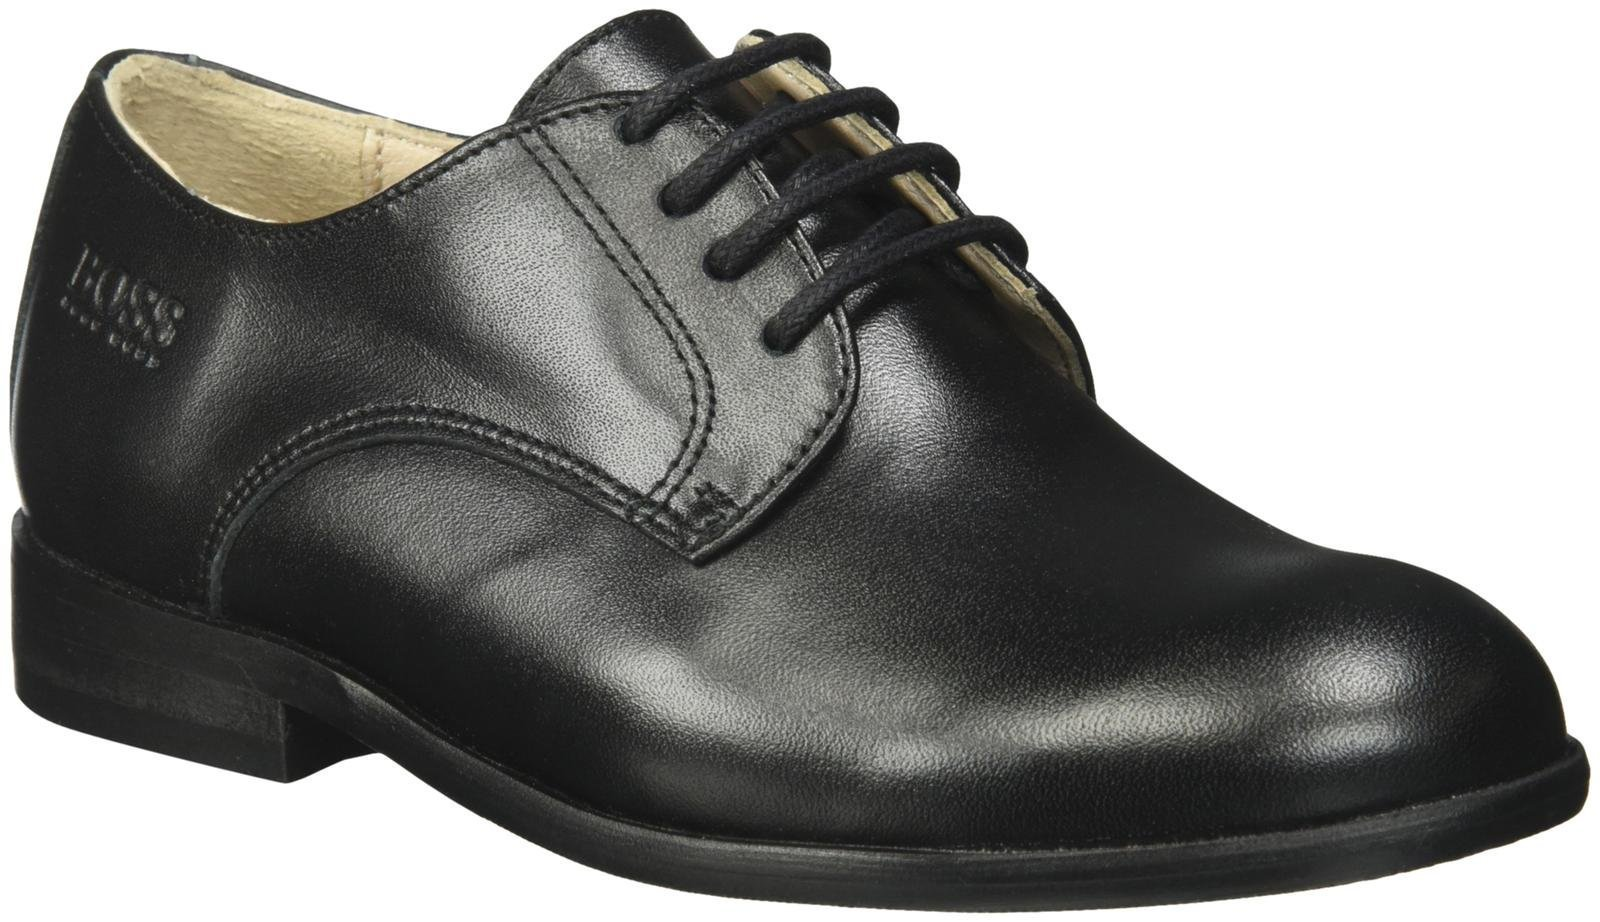 Hugo Boss J29115 Essential Leather Shoes, Black, 27 FR(10 M US Toddler) by HUGO BOSS